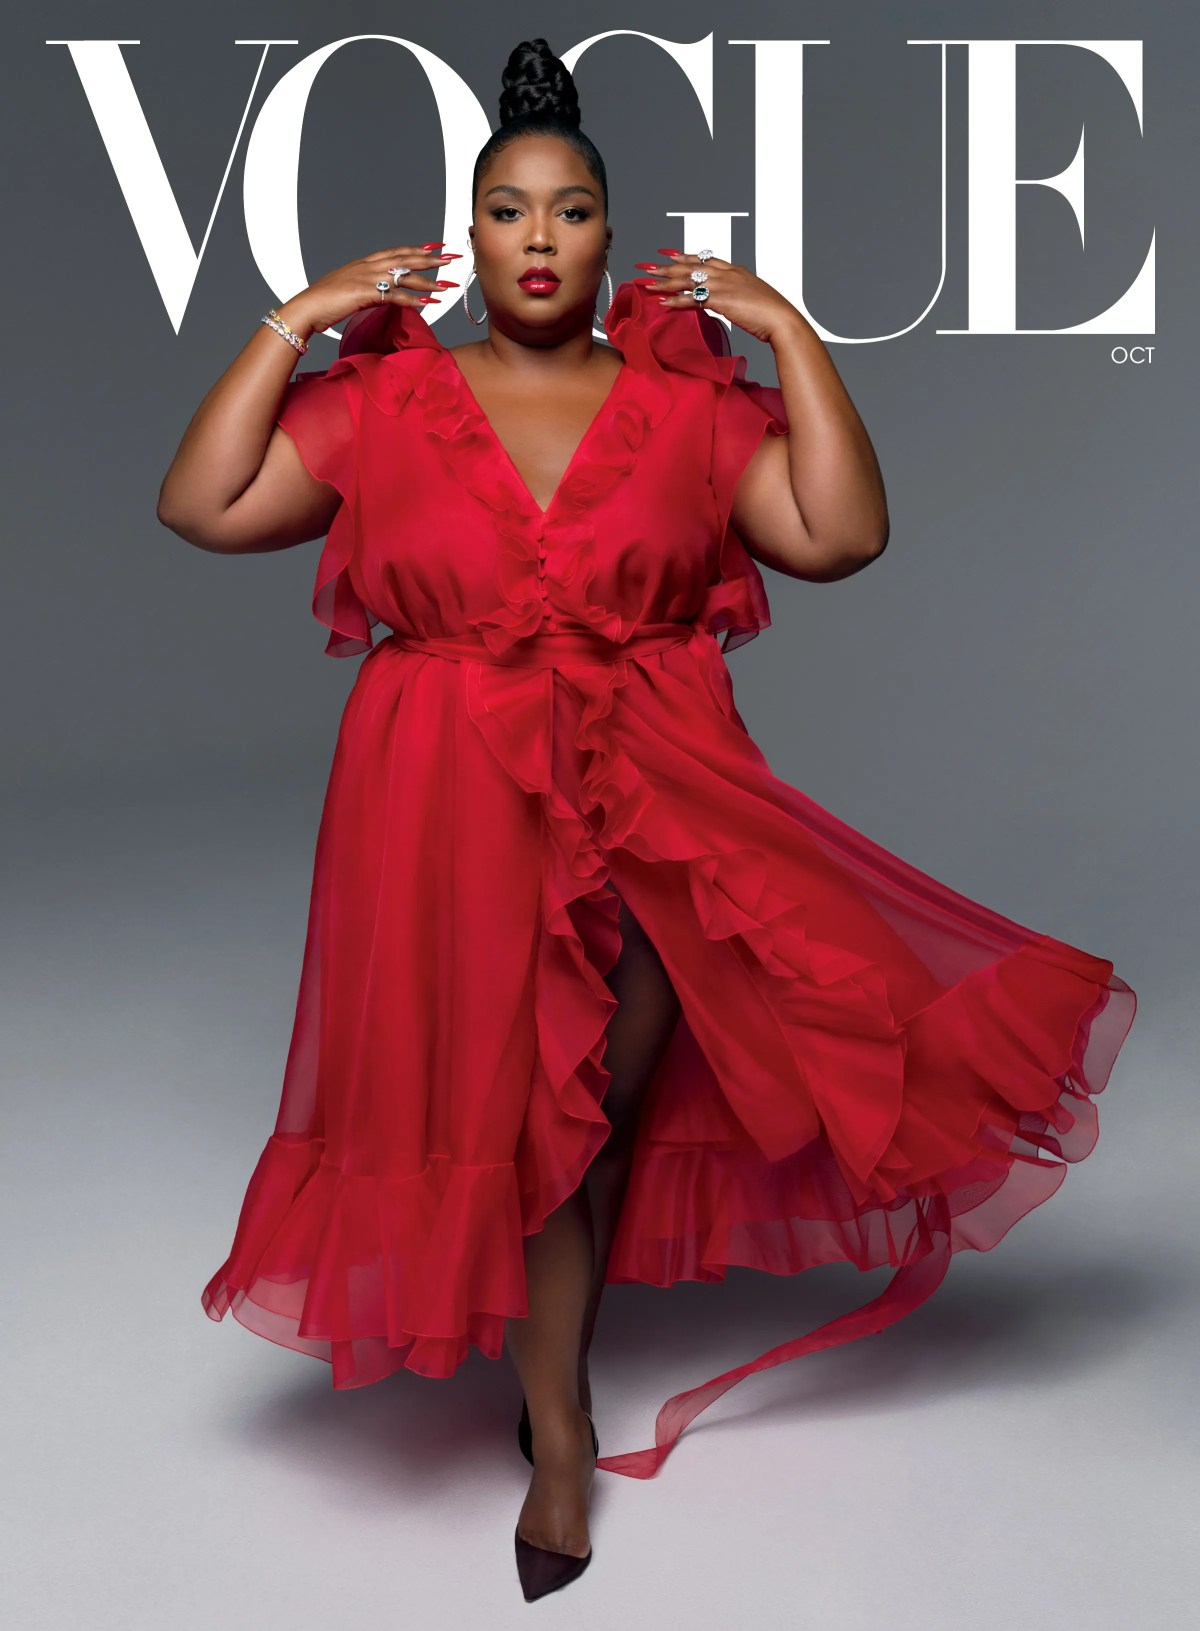 Lizzo on Hope, Justice, and the Election | Vogue